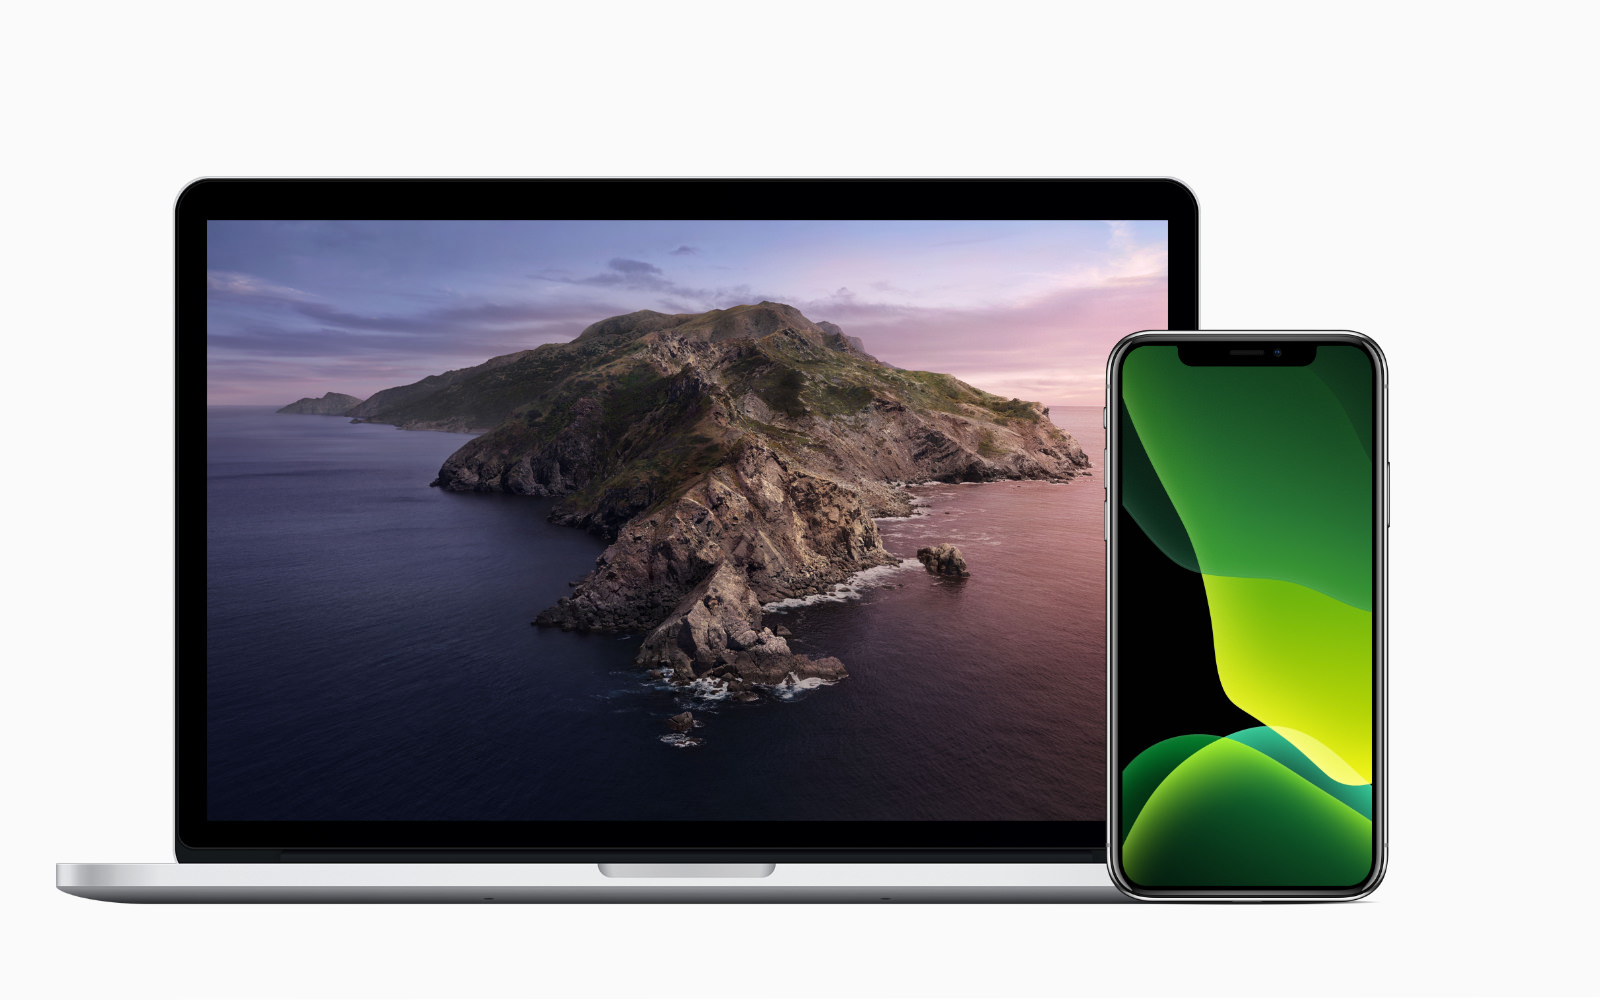 Iphone and macbookpro with new wallpapers